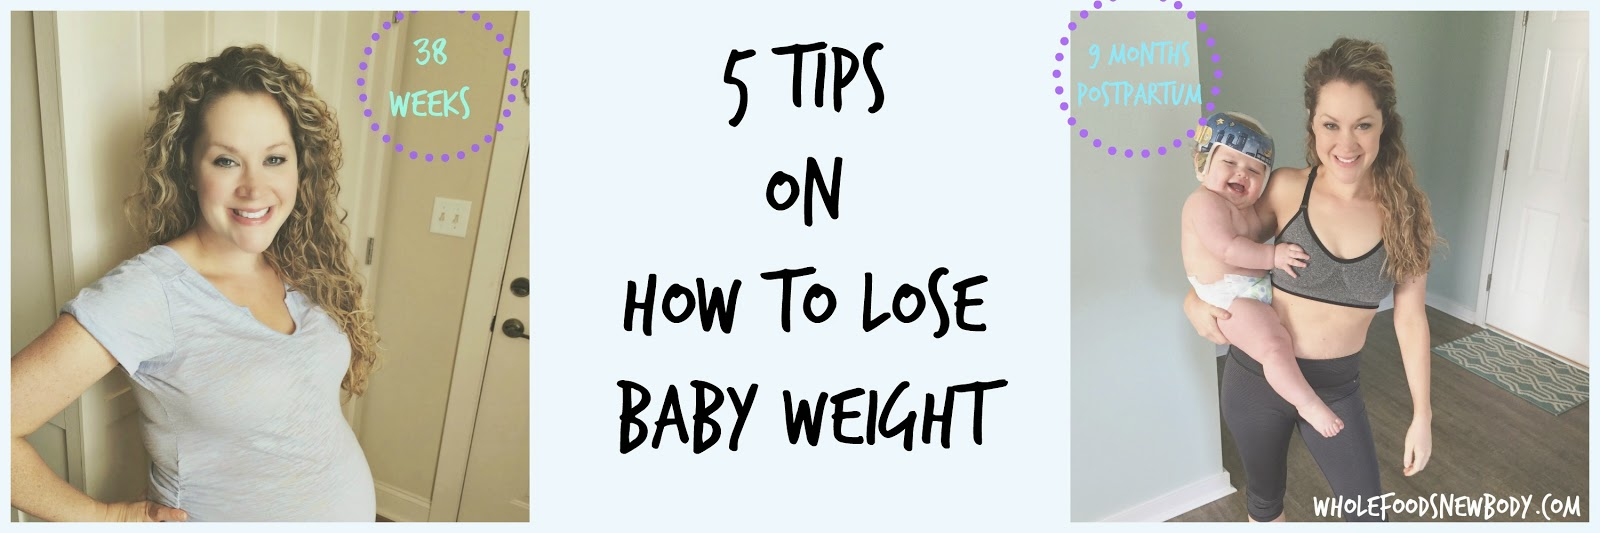 How to lose weight while on high blood pressure medication